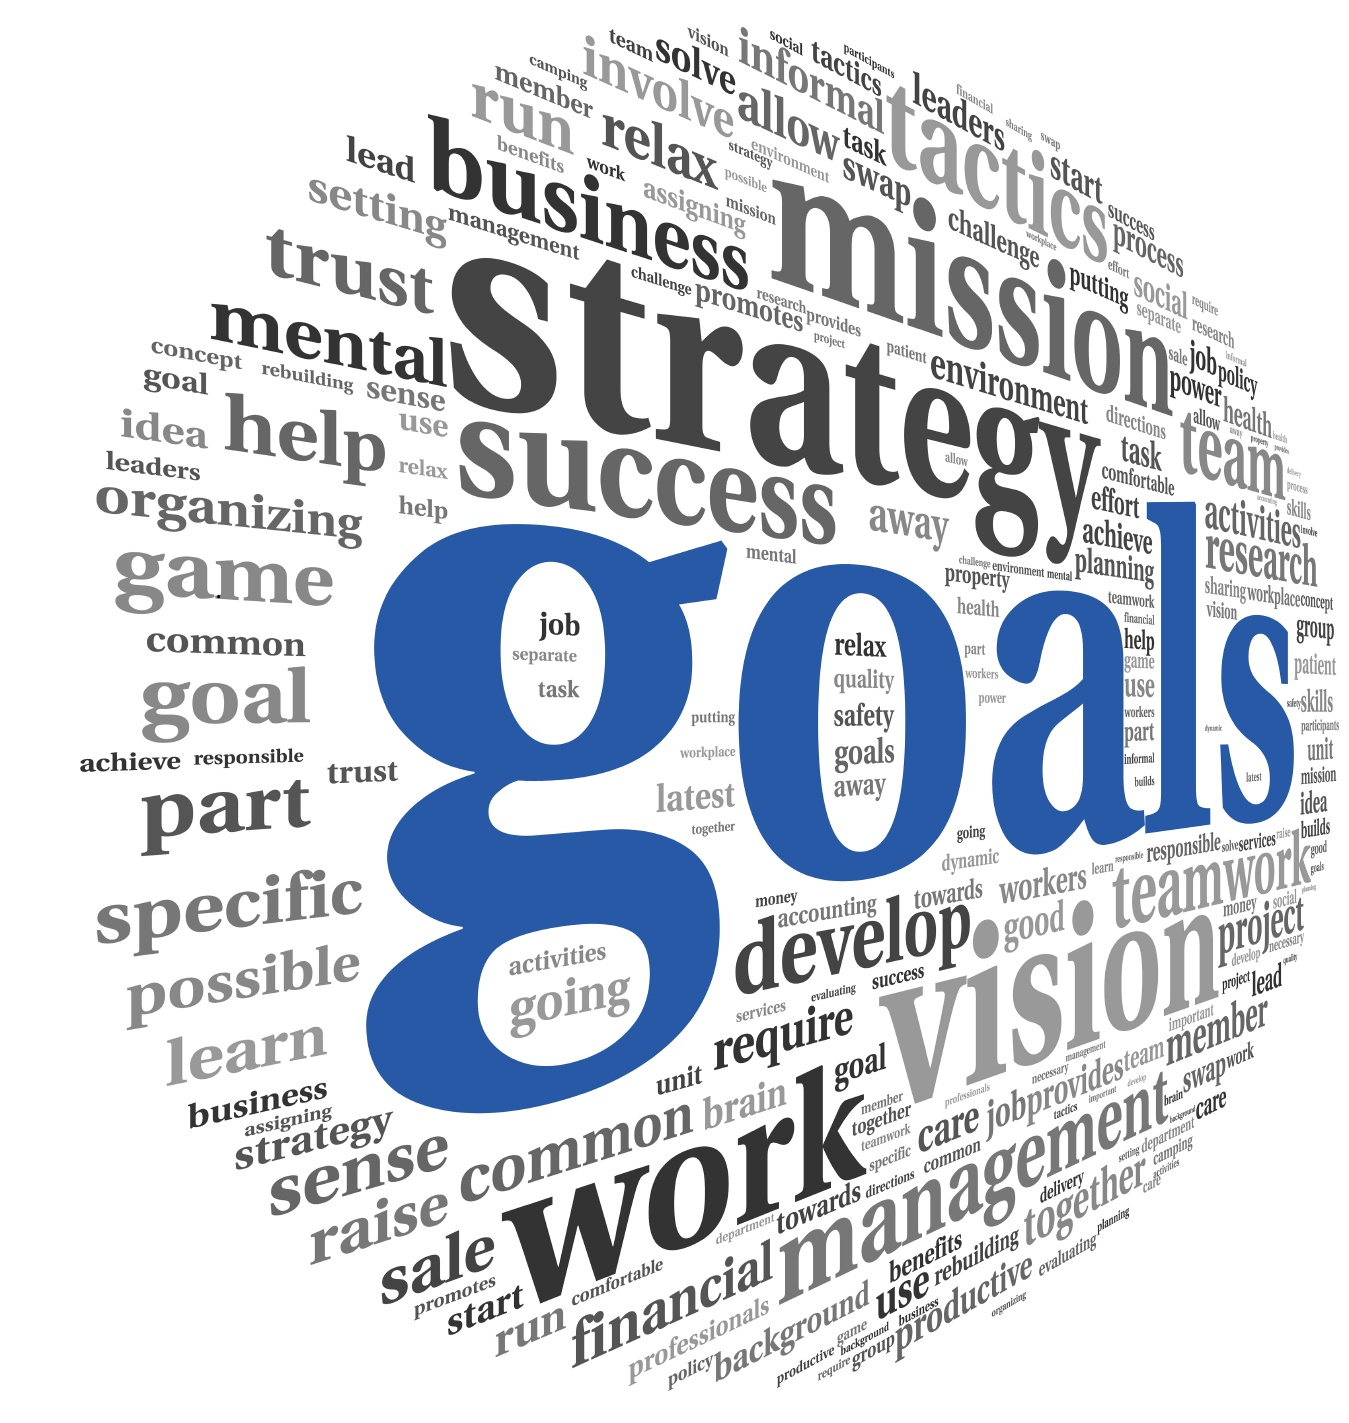 Digital Marketing Strategy and Goals